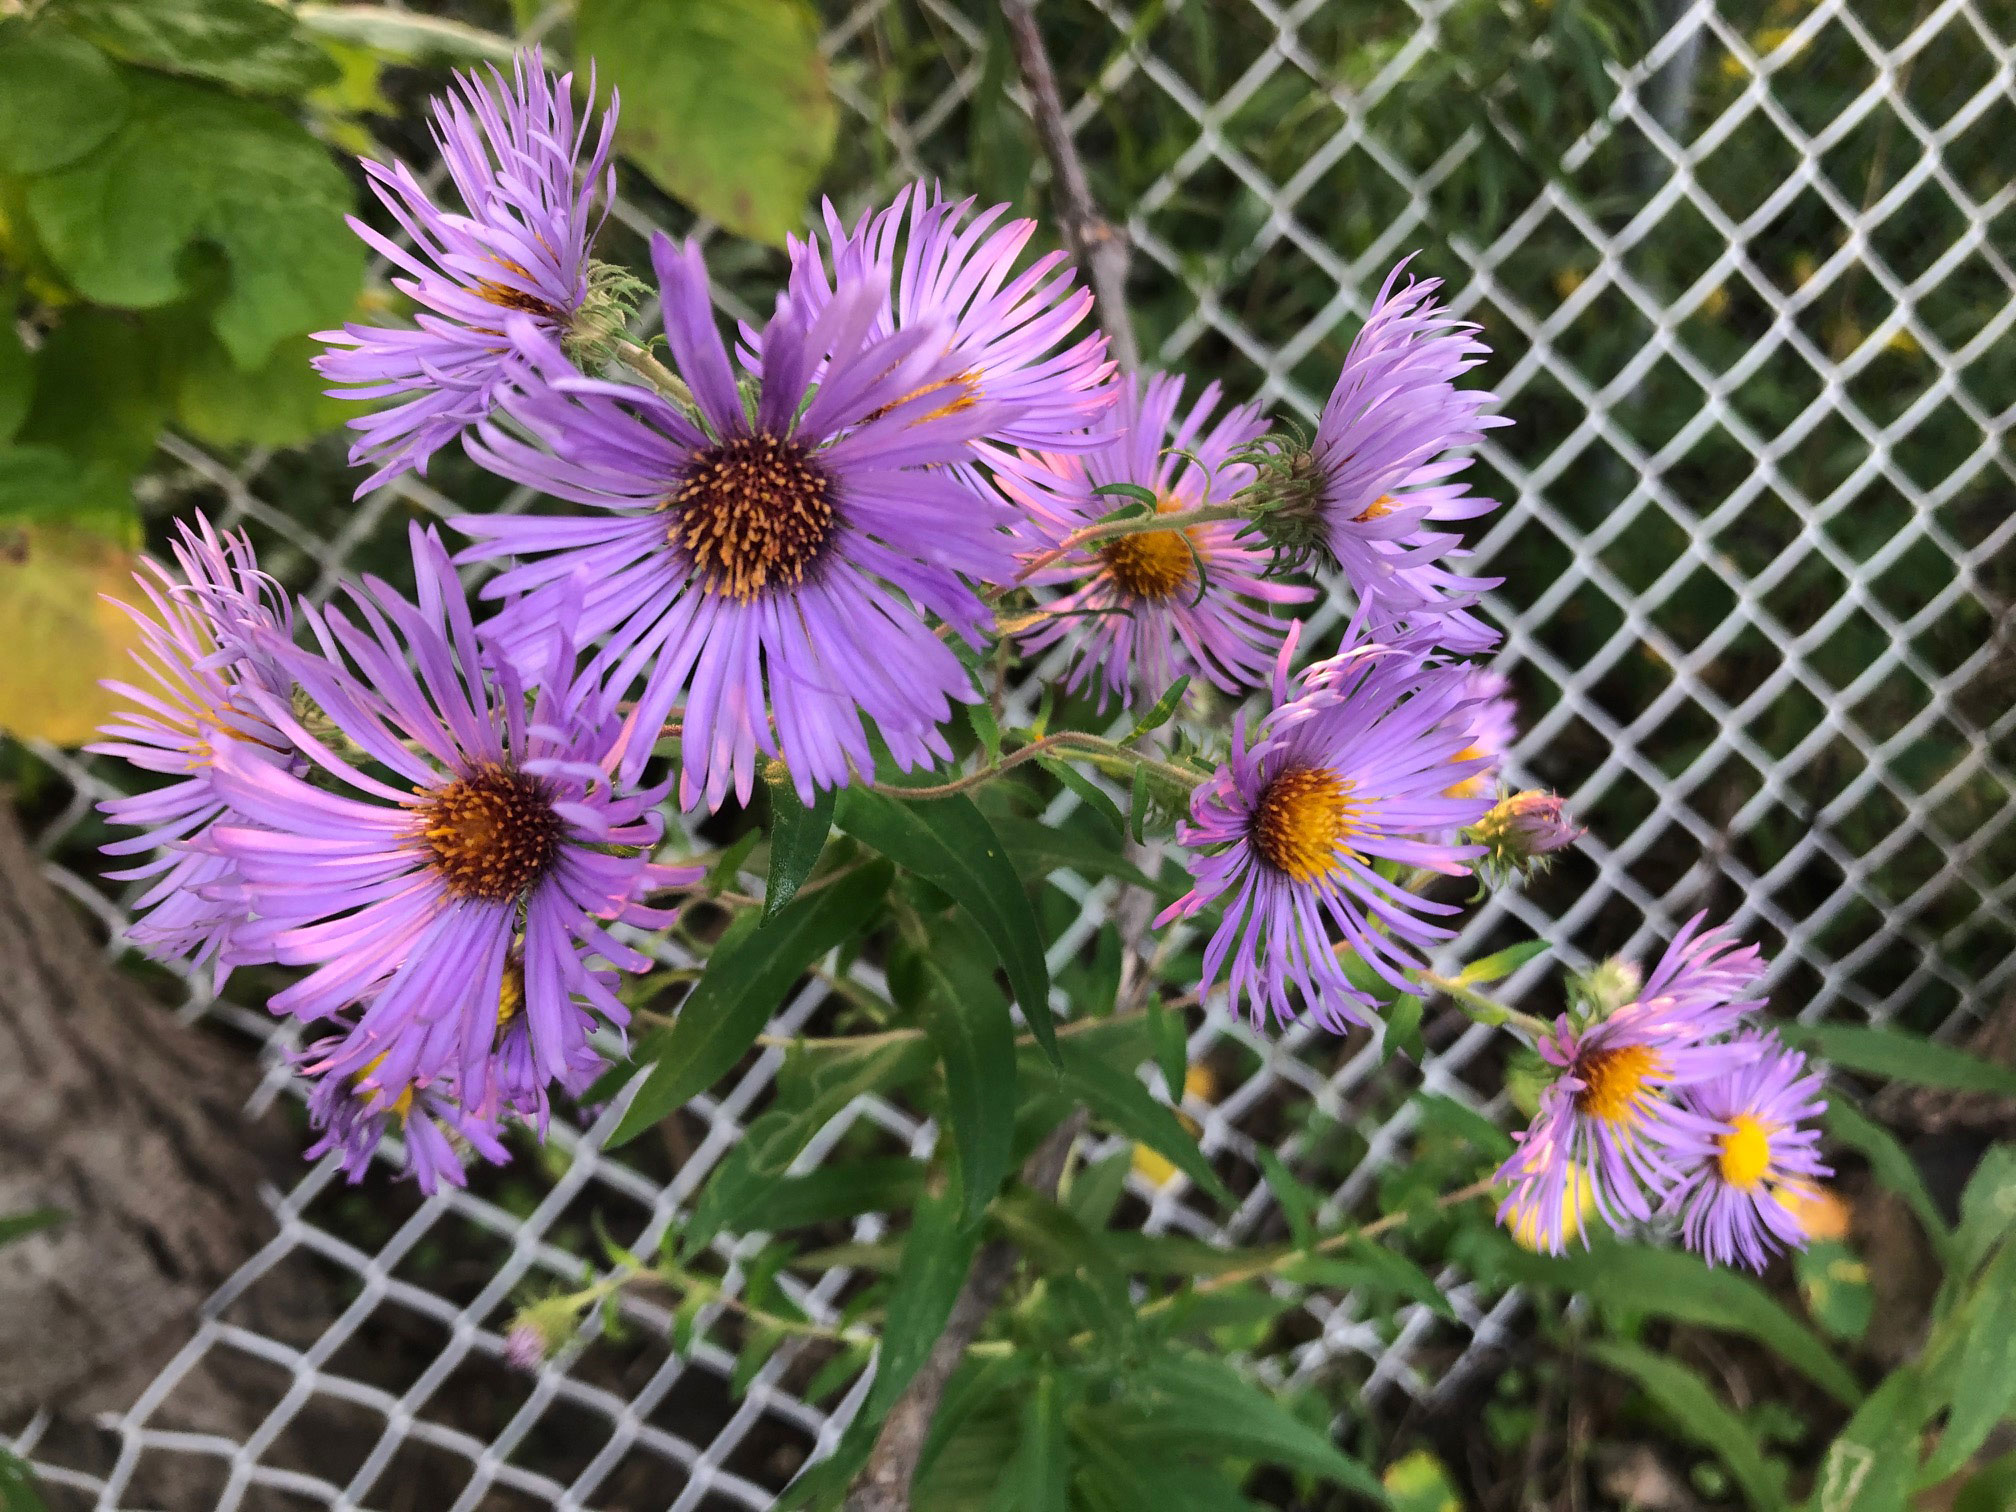 Still more asters!